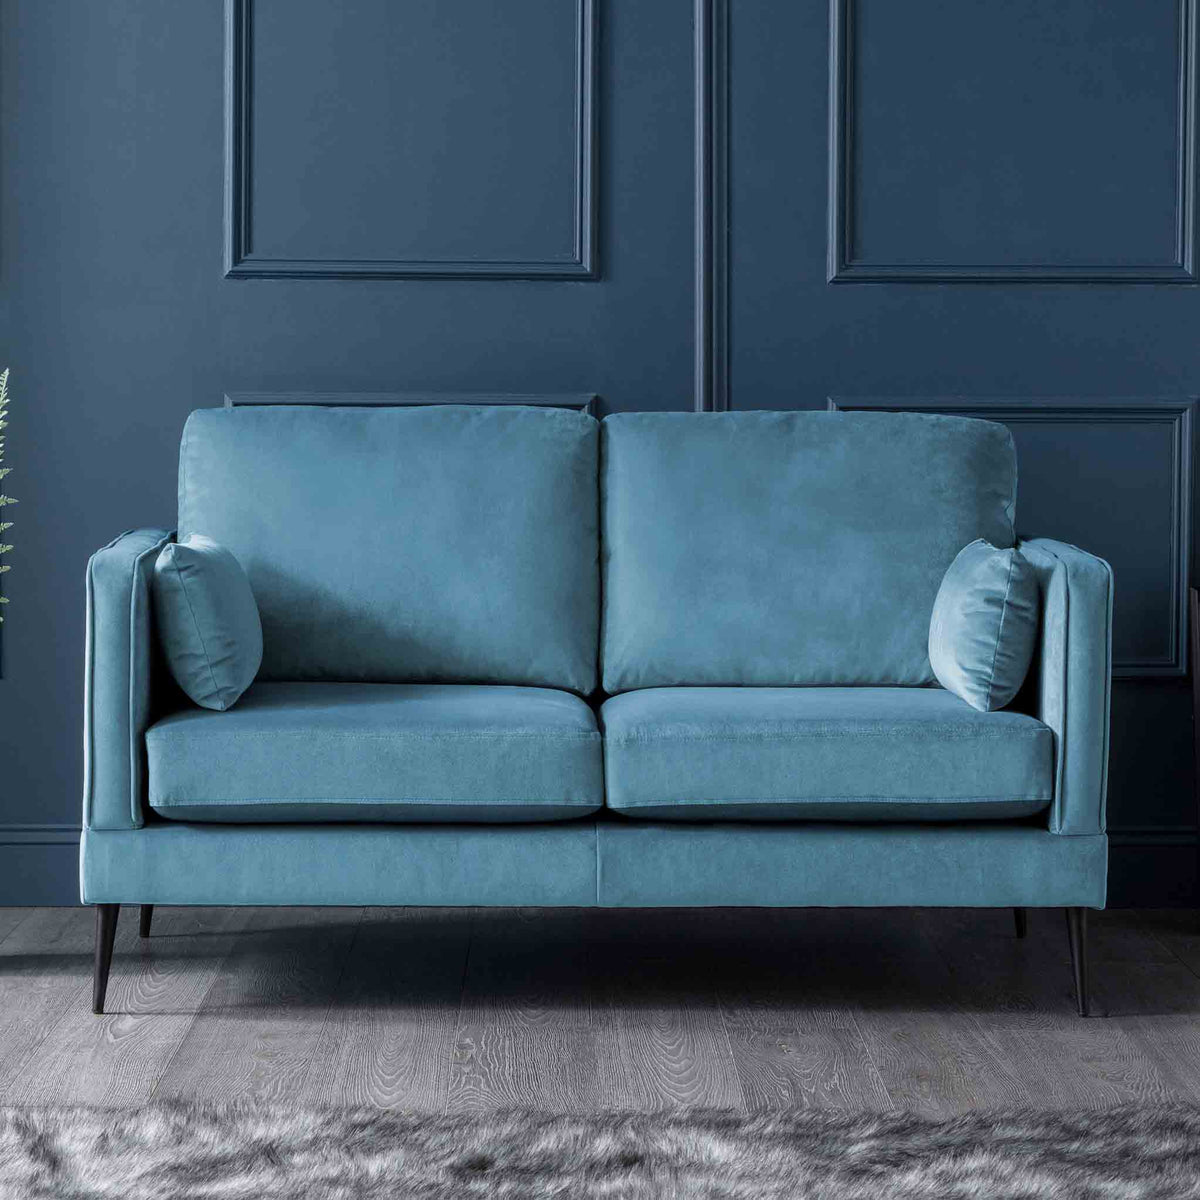 Anton 2 Seater Sofa - Peacock